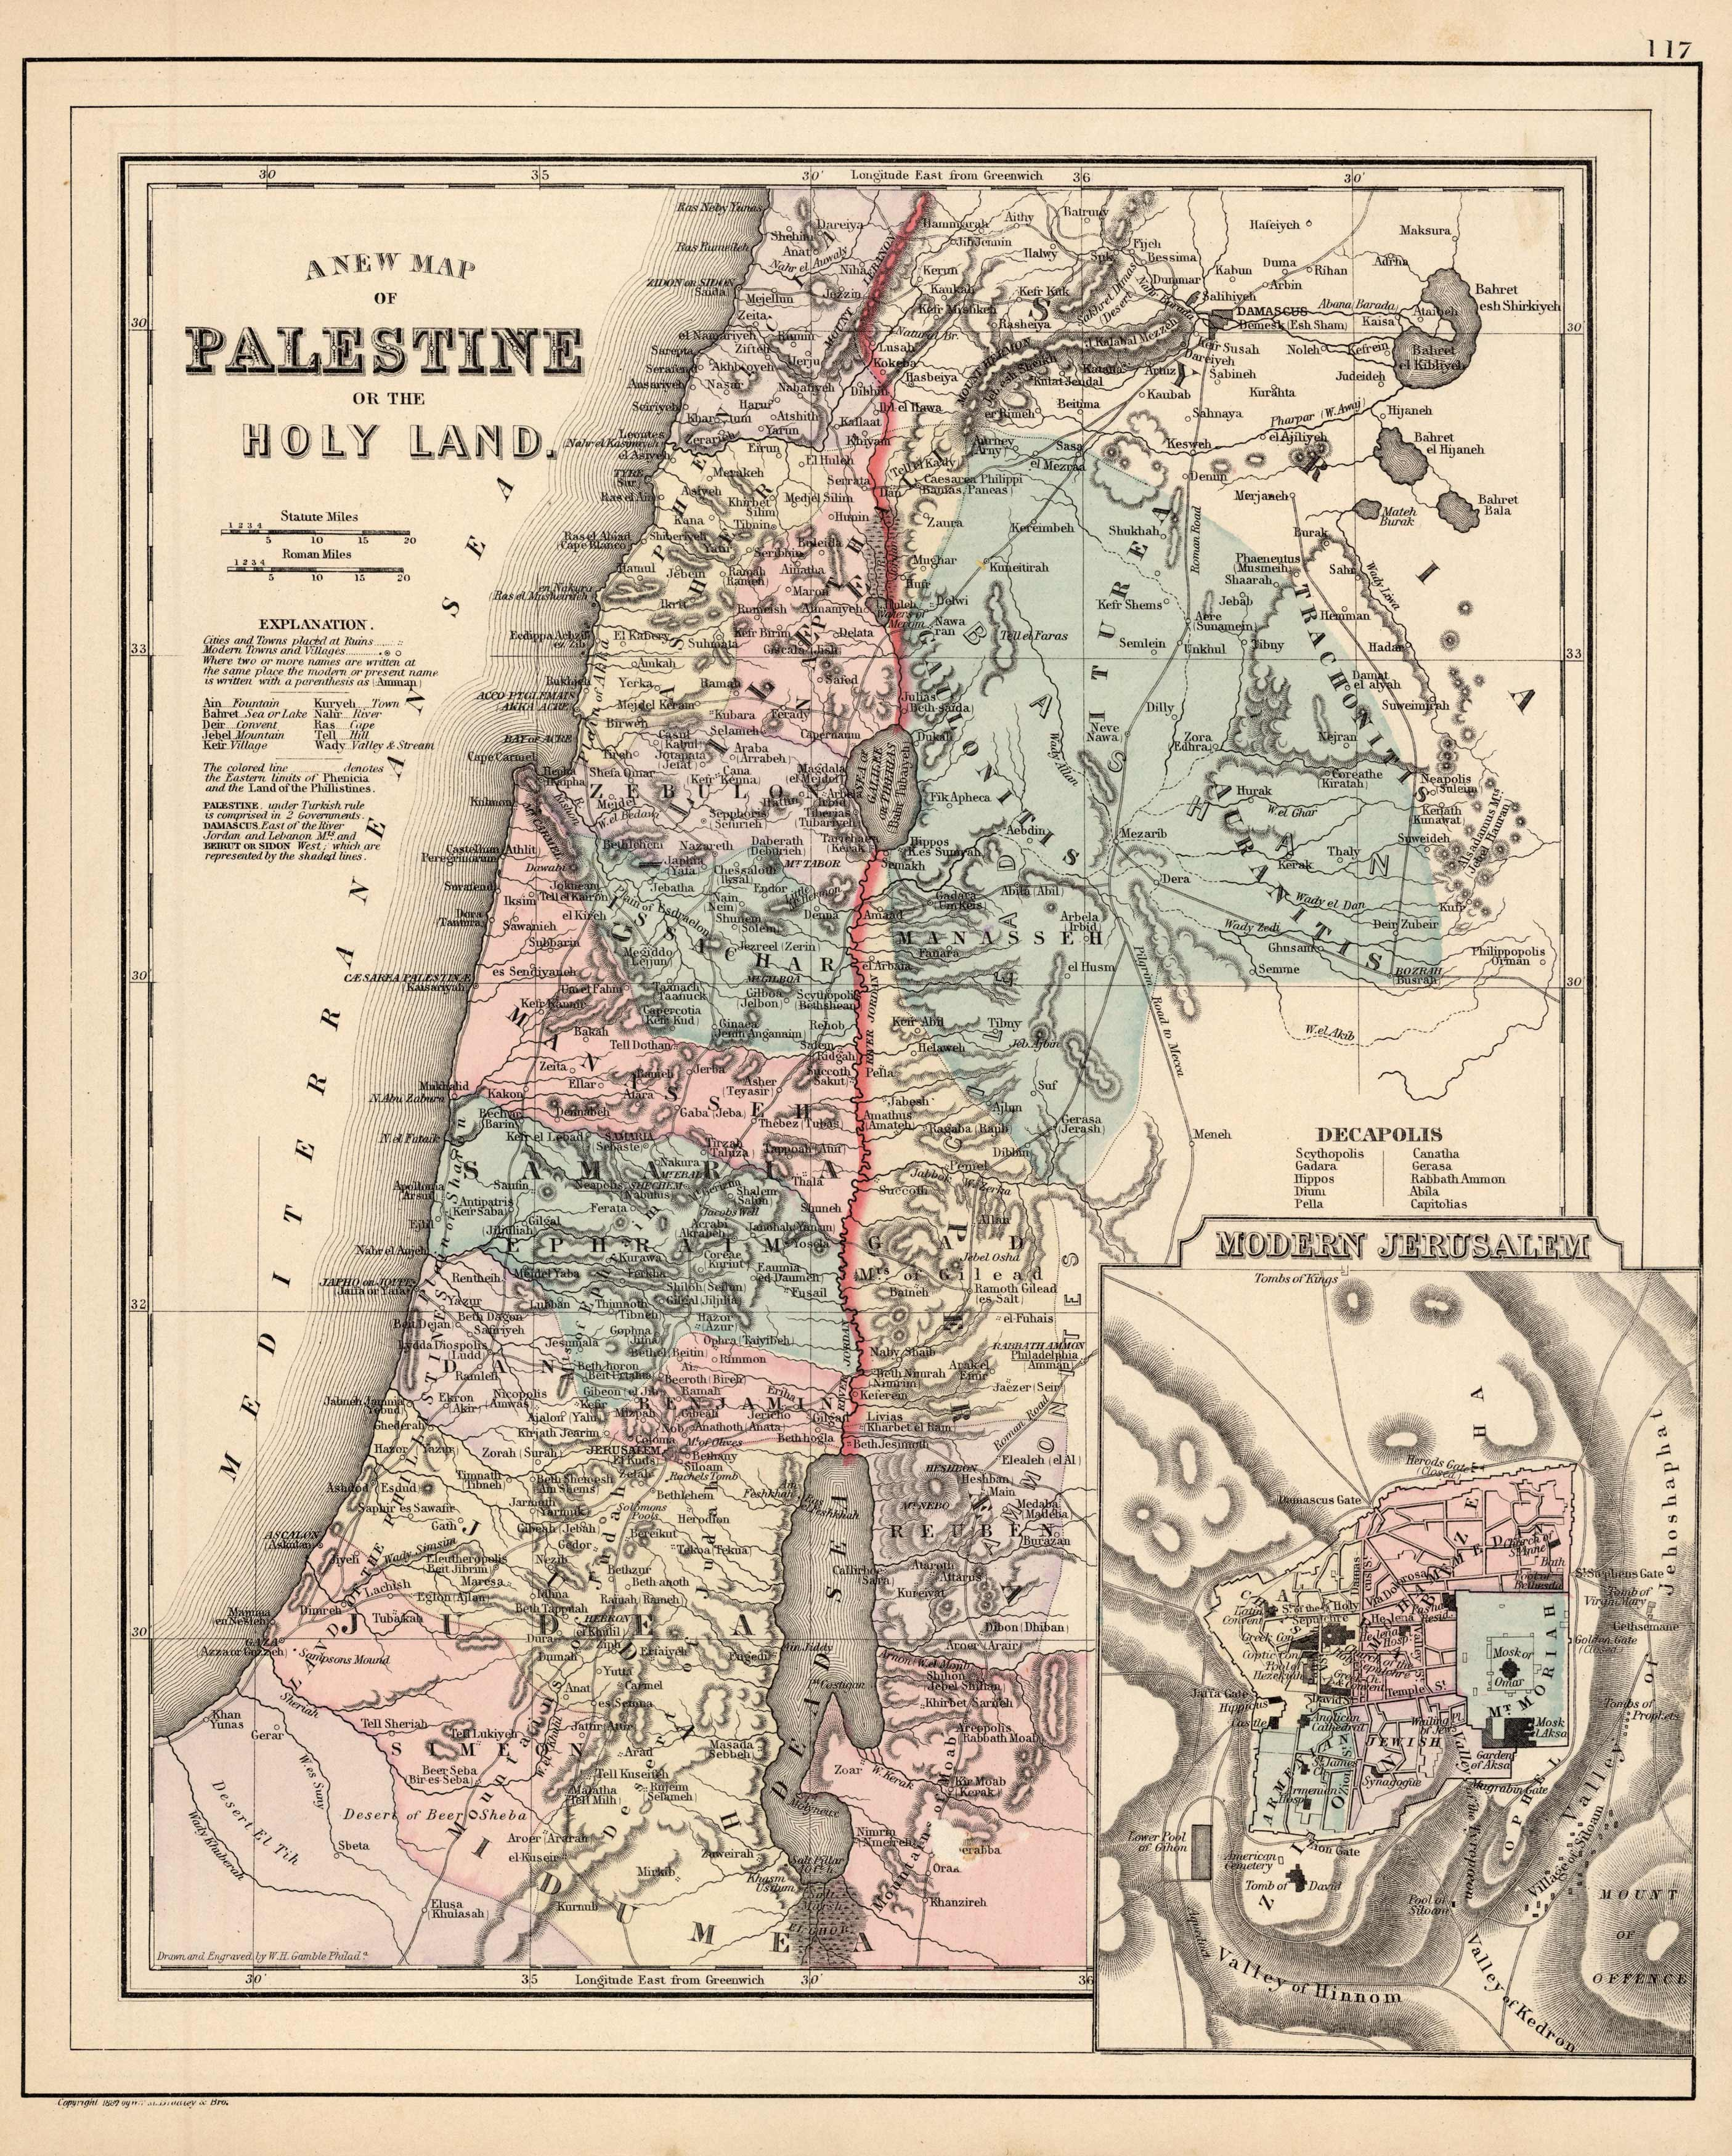 A New Map of Palestine or the Holy Land (with an inset map of Modern Jerusalem)